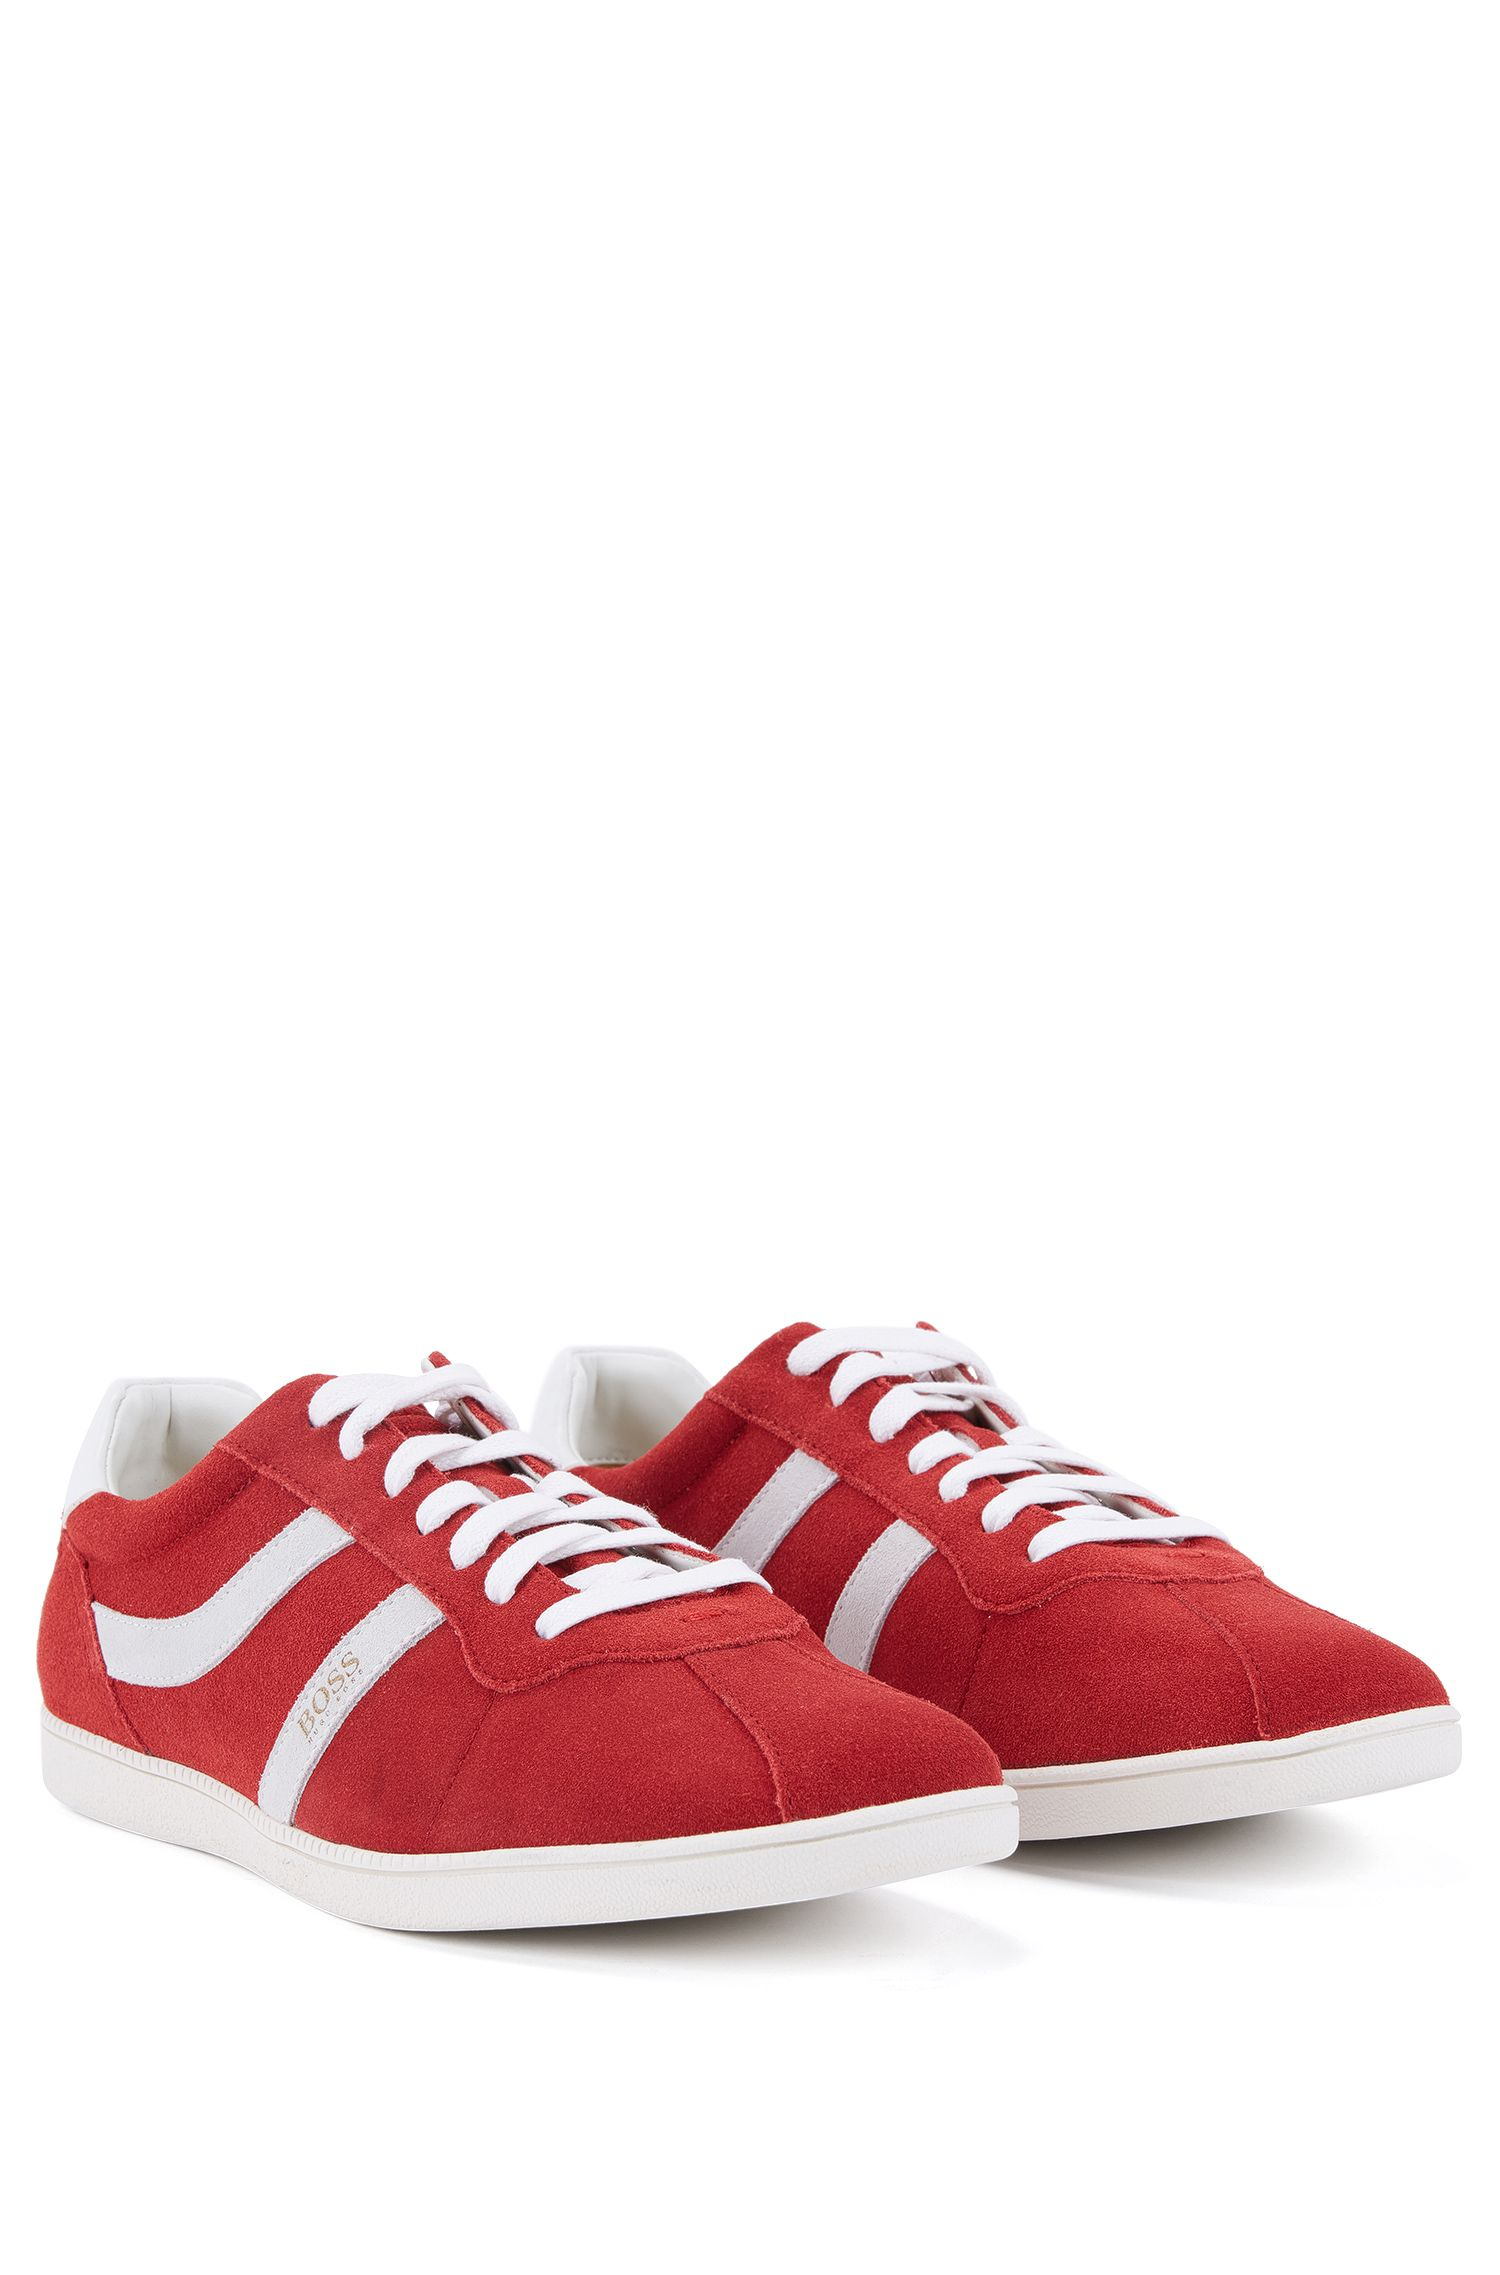 Low-top suede trainers with side stripes, Red